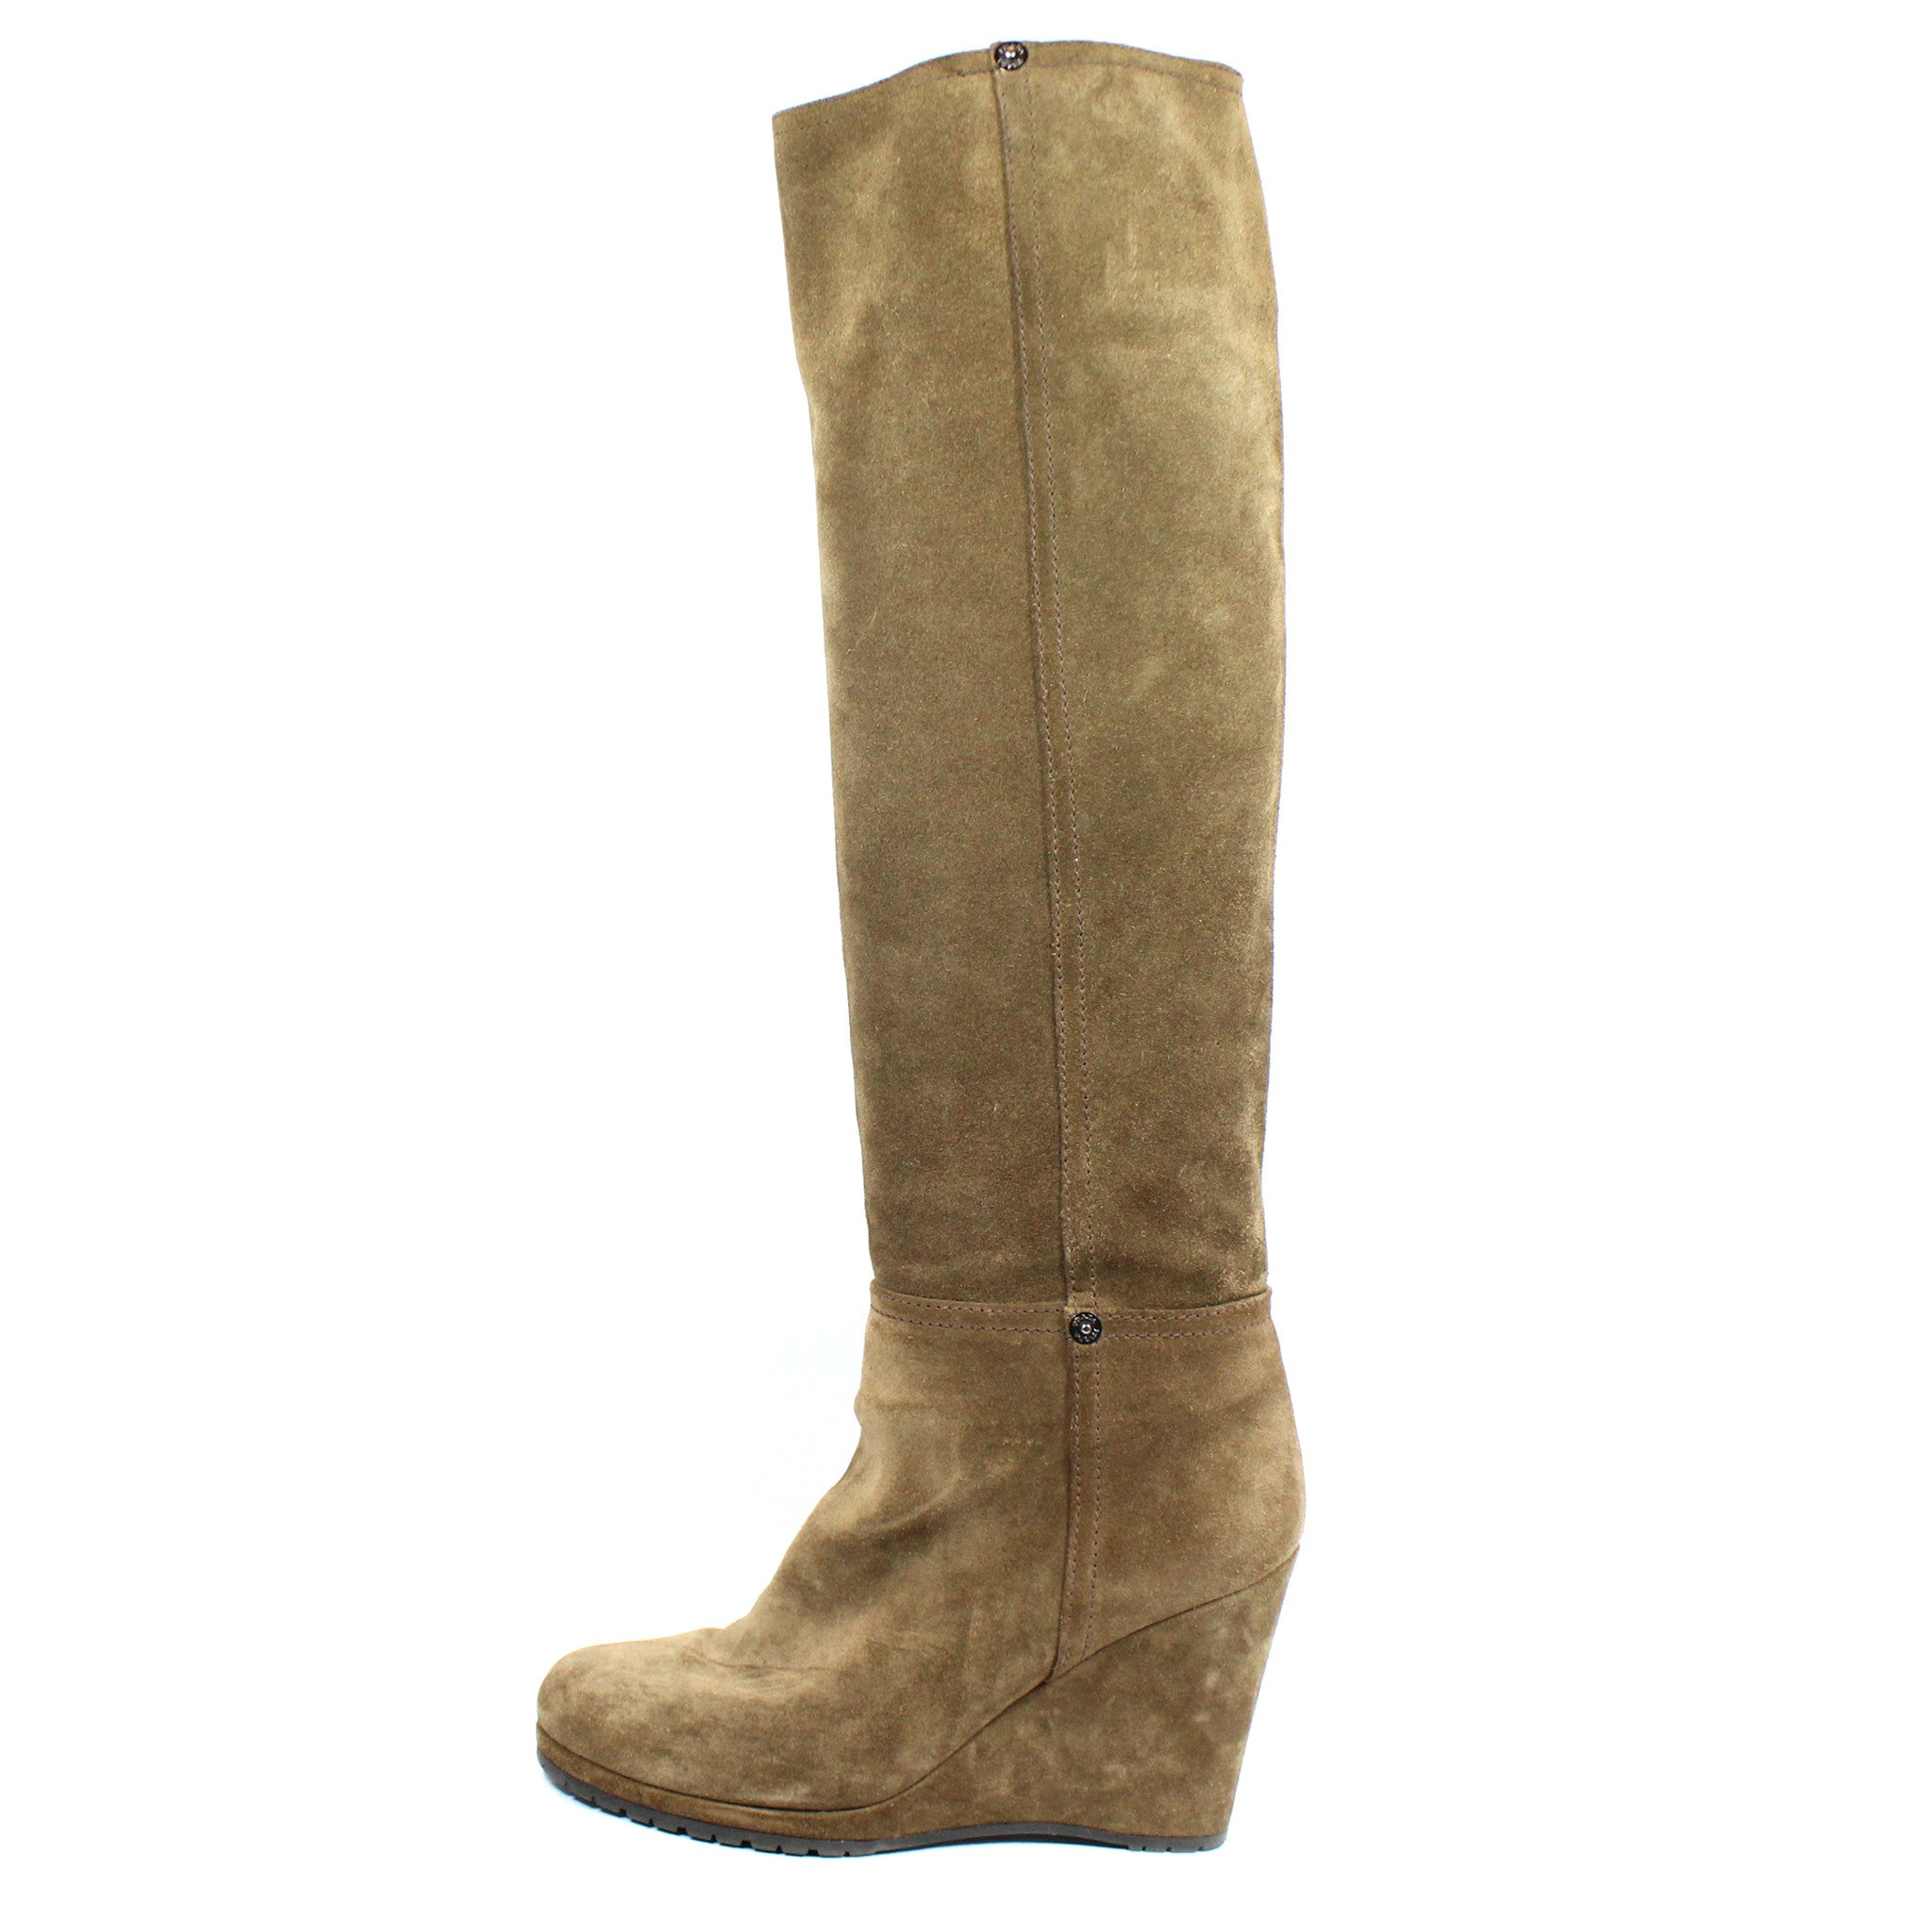 Prada Suede Taupe Wedge Boots (Size 38) - Encore Consignment - 1